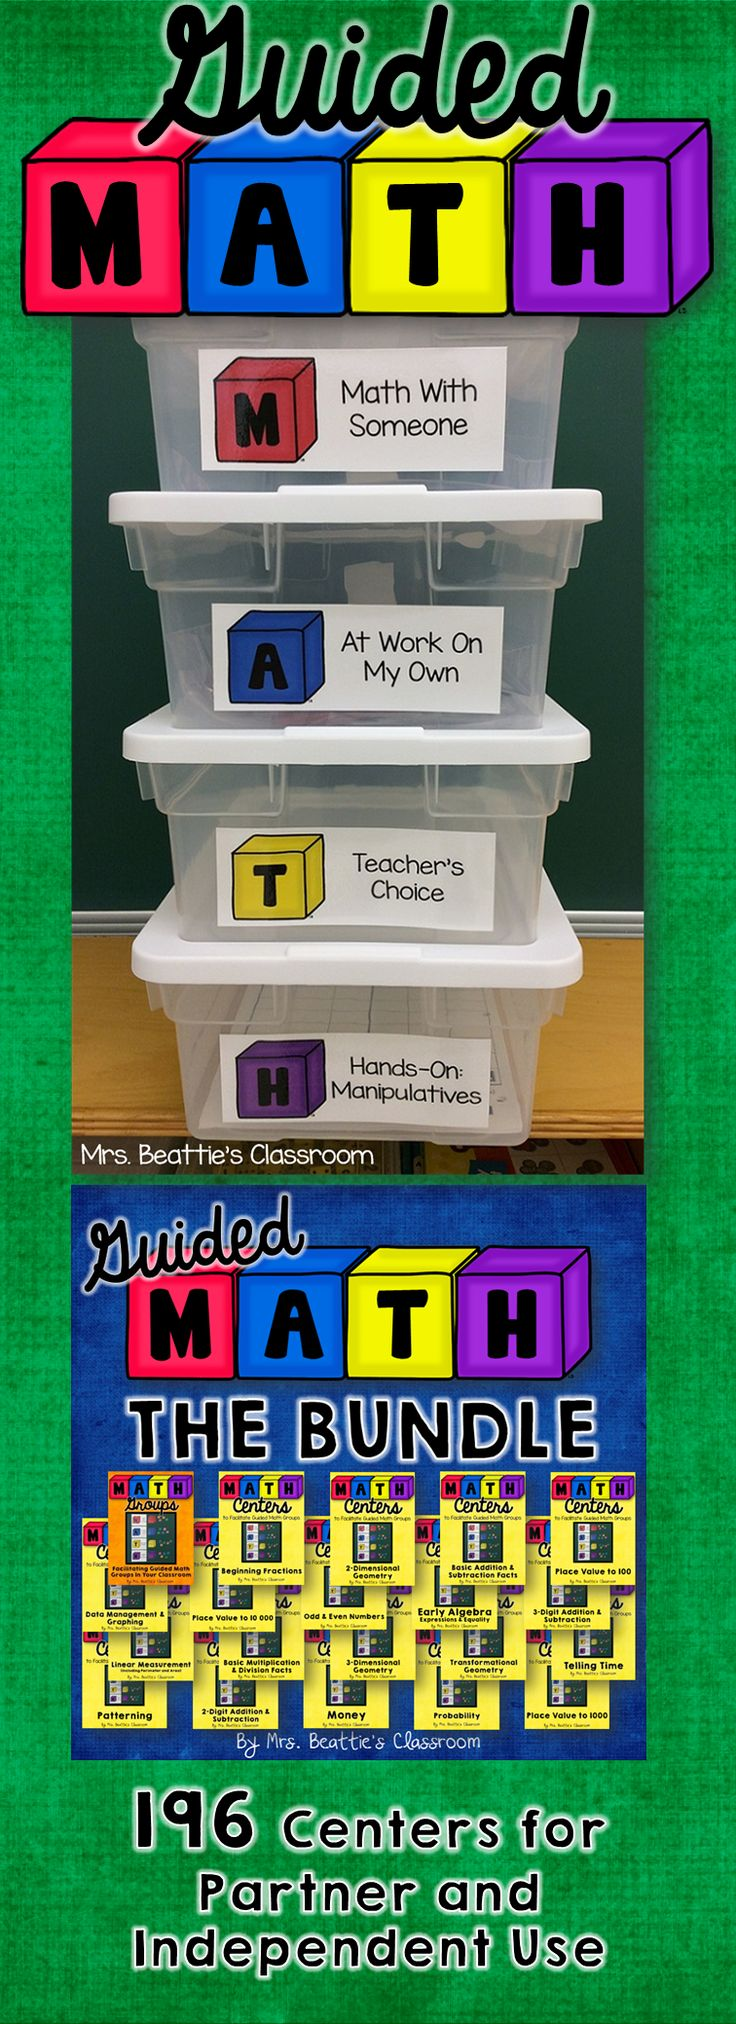 Using a Guided Math or Daily 5 Math approach in your classroom? Grab these Guided Math resources from Mrs. Beattie's Classroom in one low-cost bundle!! Click to check out the great reviews!